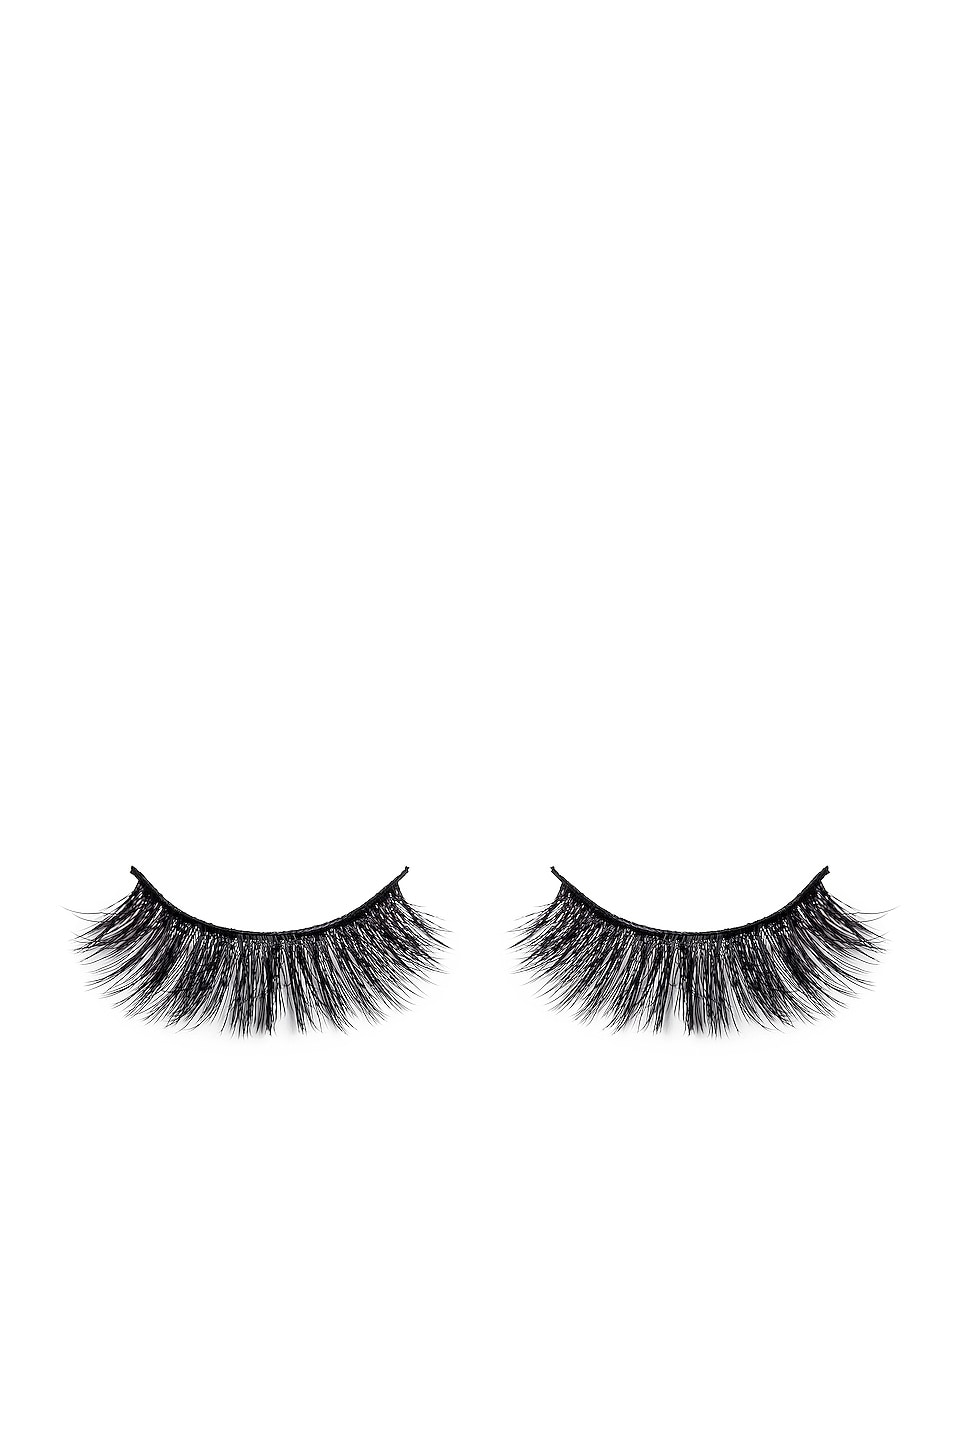 Battington Lashes Bardot 3D Silk Lashes in Black